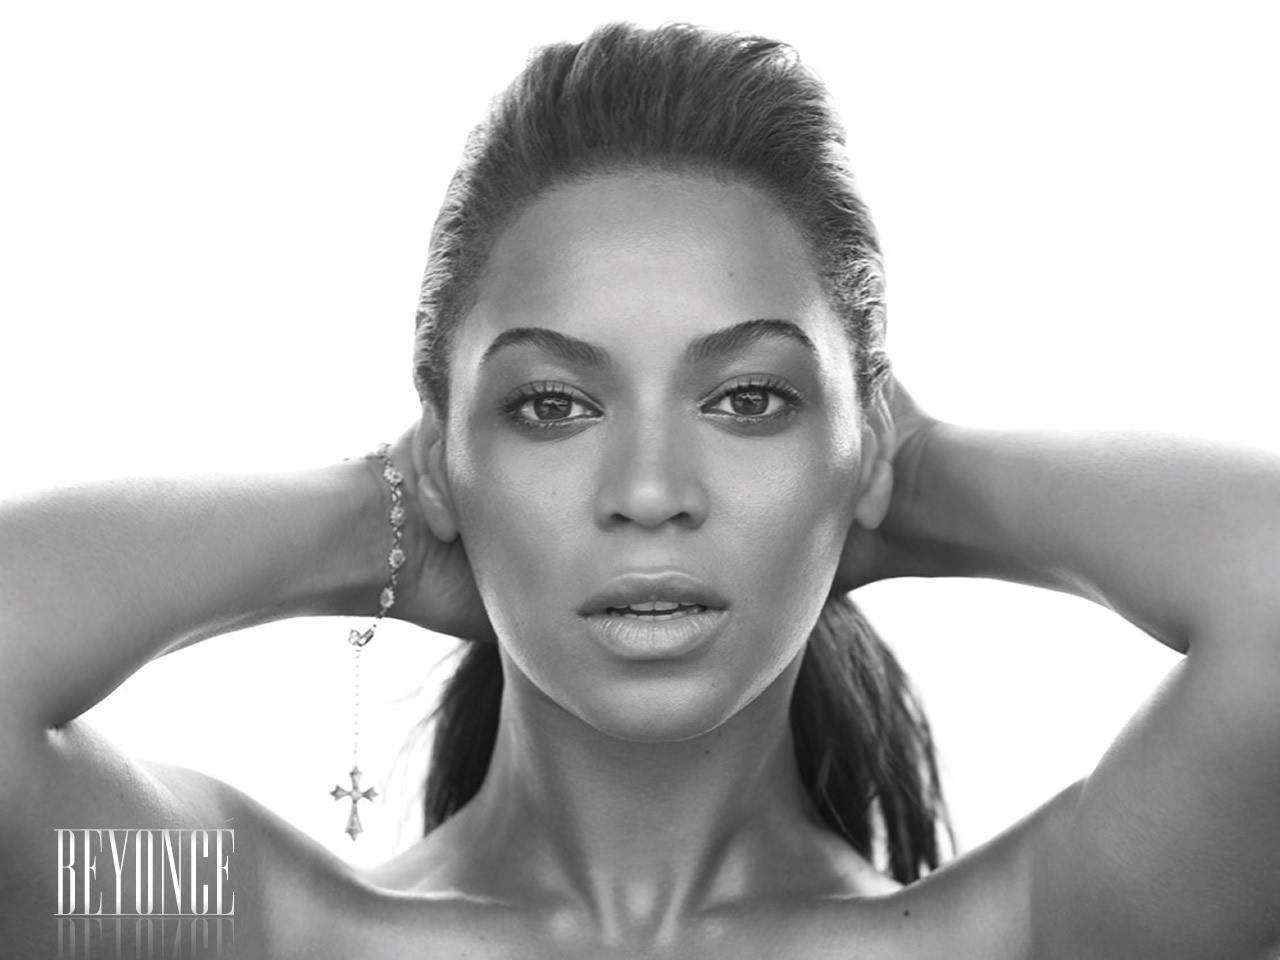 Beyonce Backgrounds 1280x960